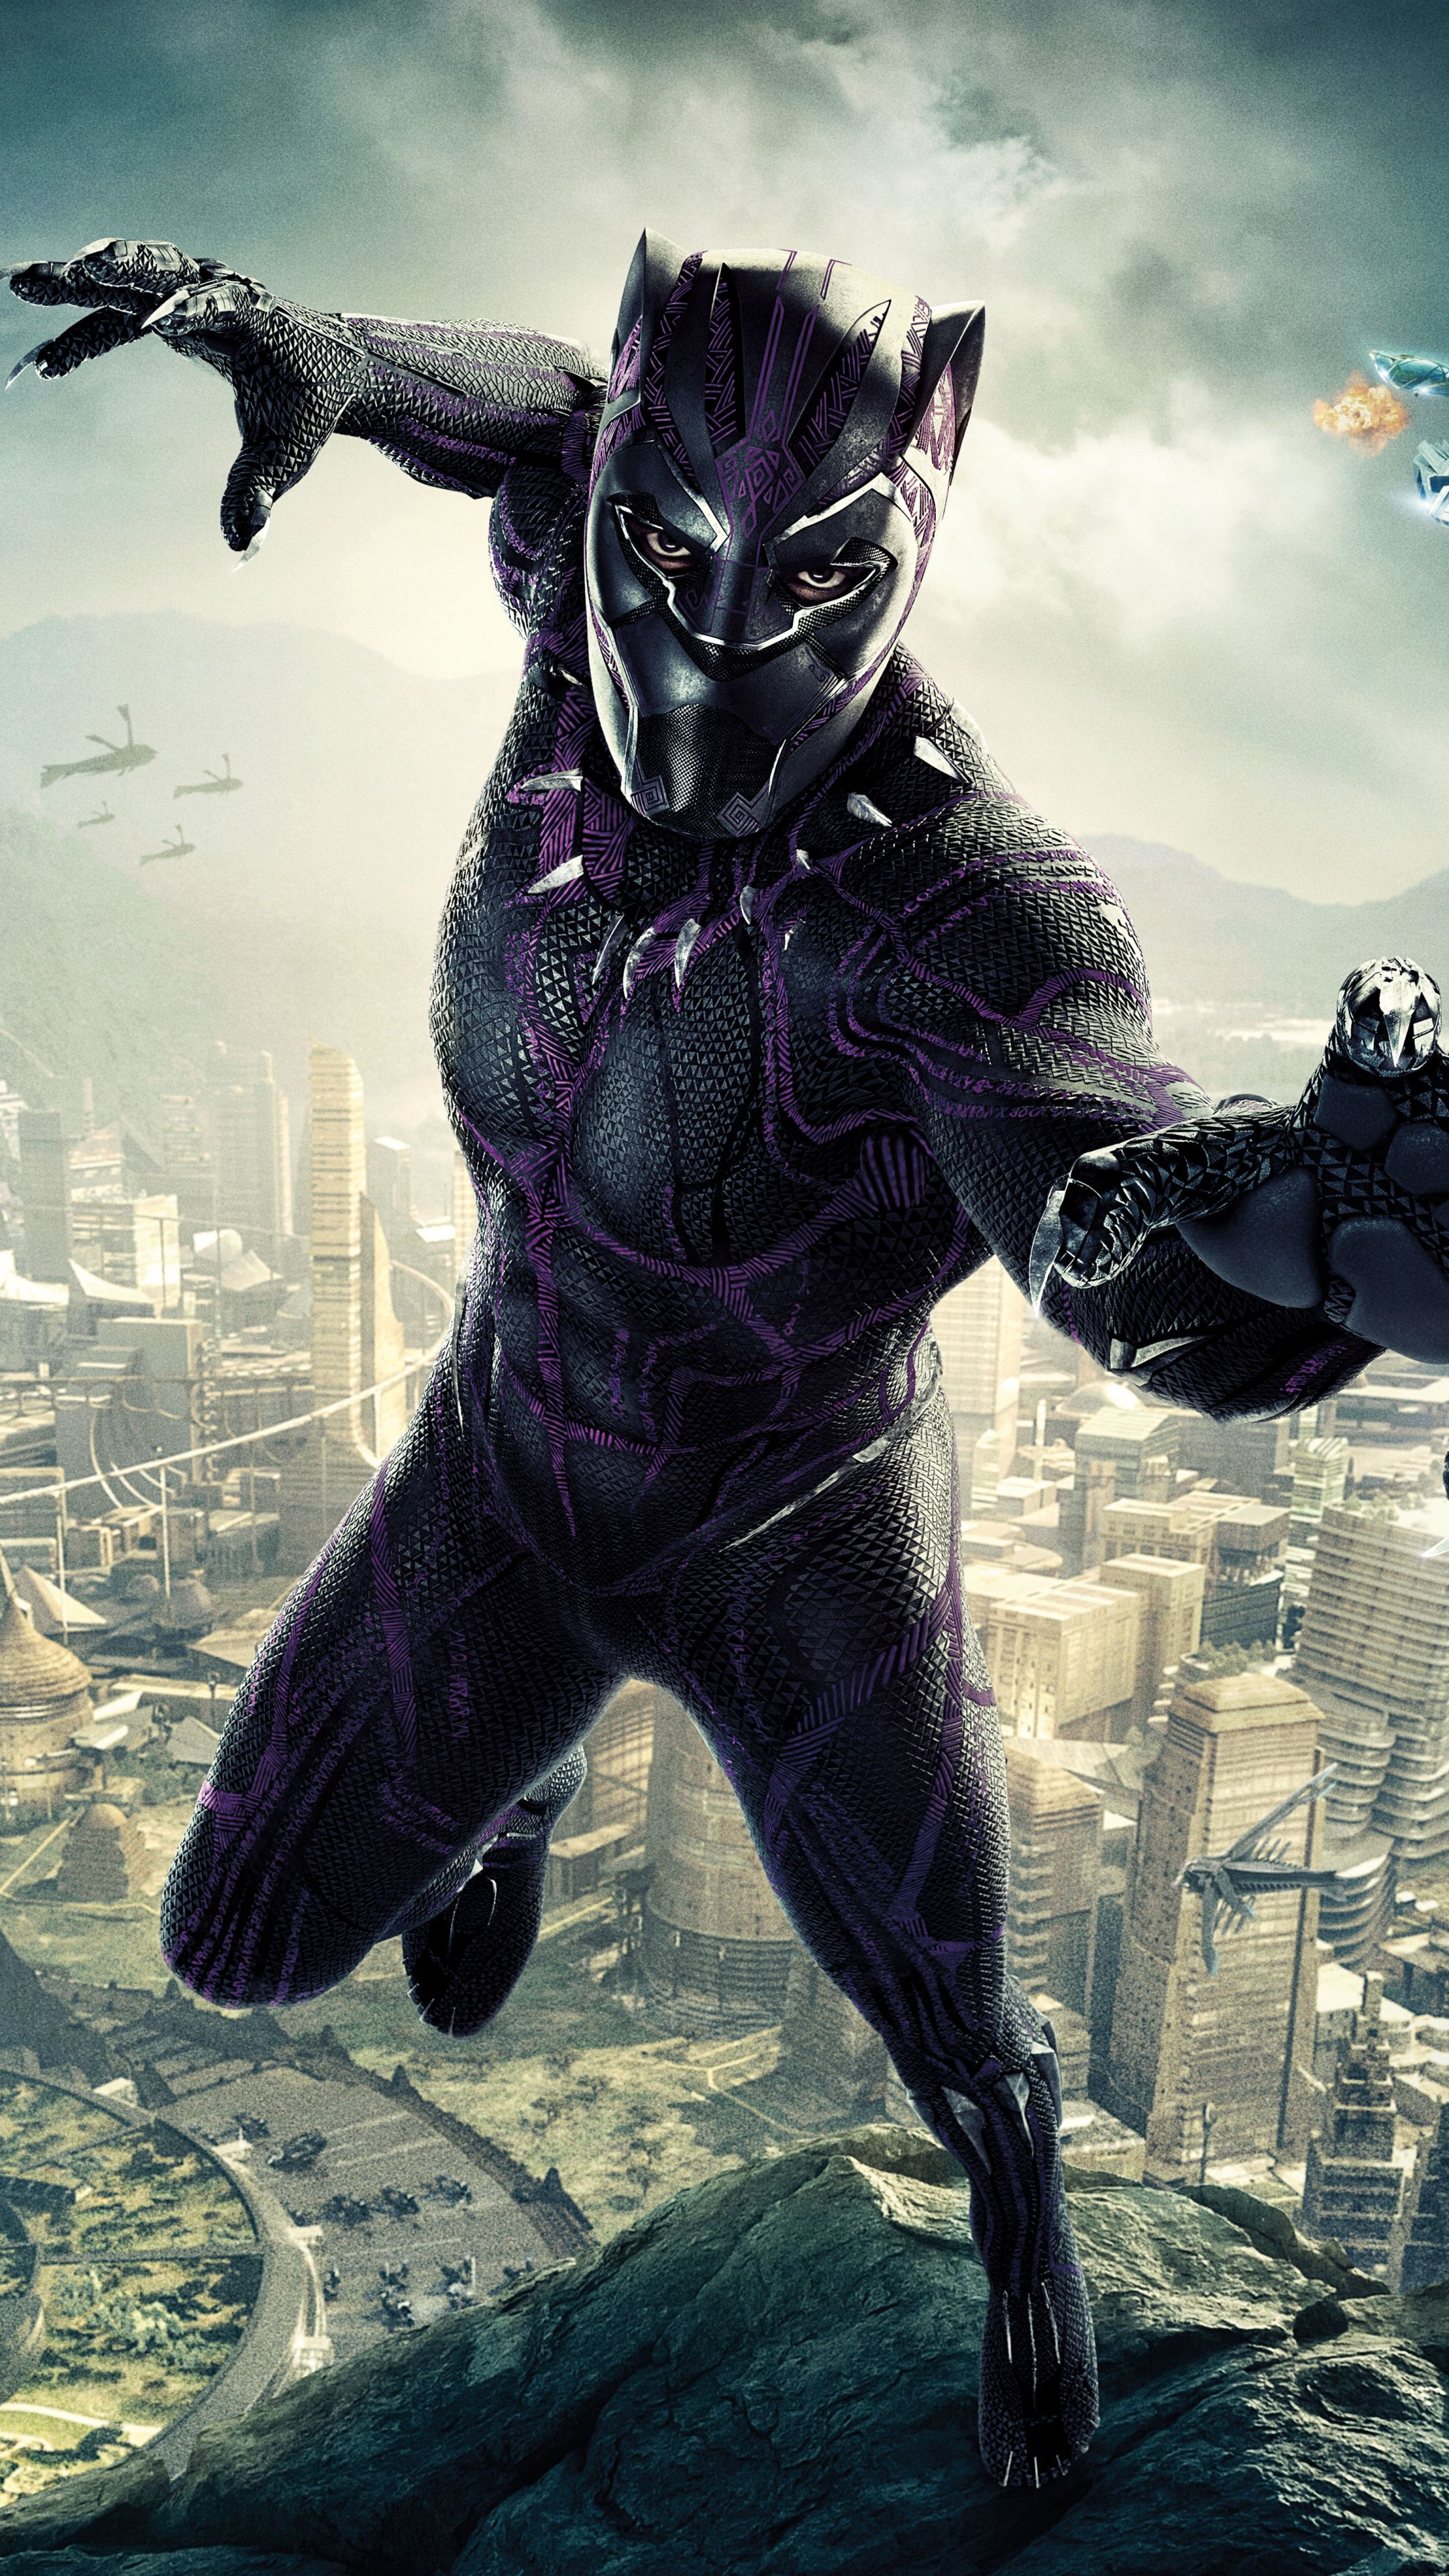 Black Panther Movie Wallpapers Top Free Black Panther Movie Backgrounds Wallpaperaccess